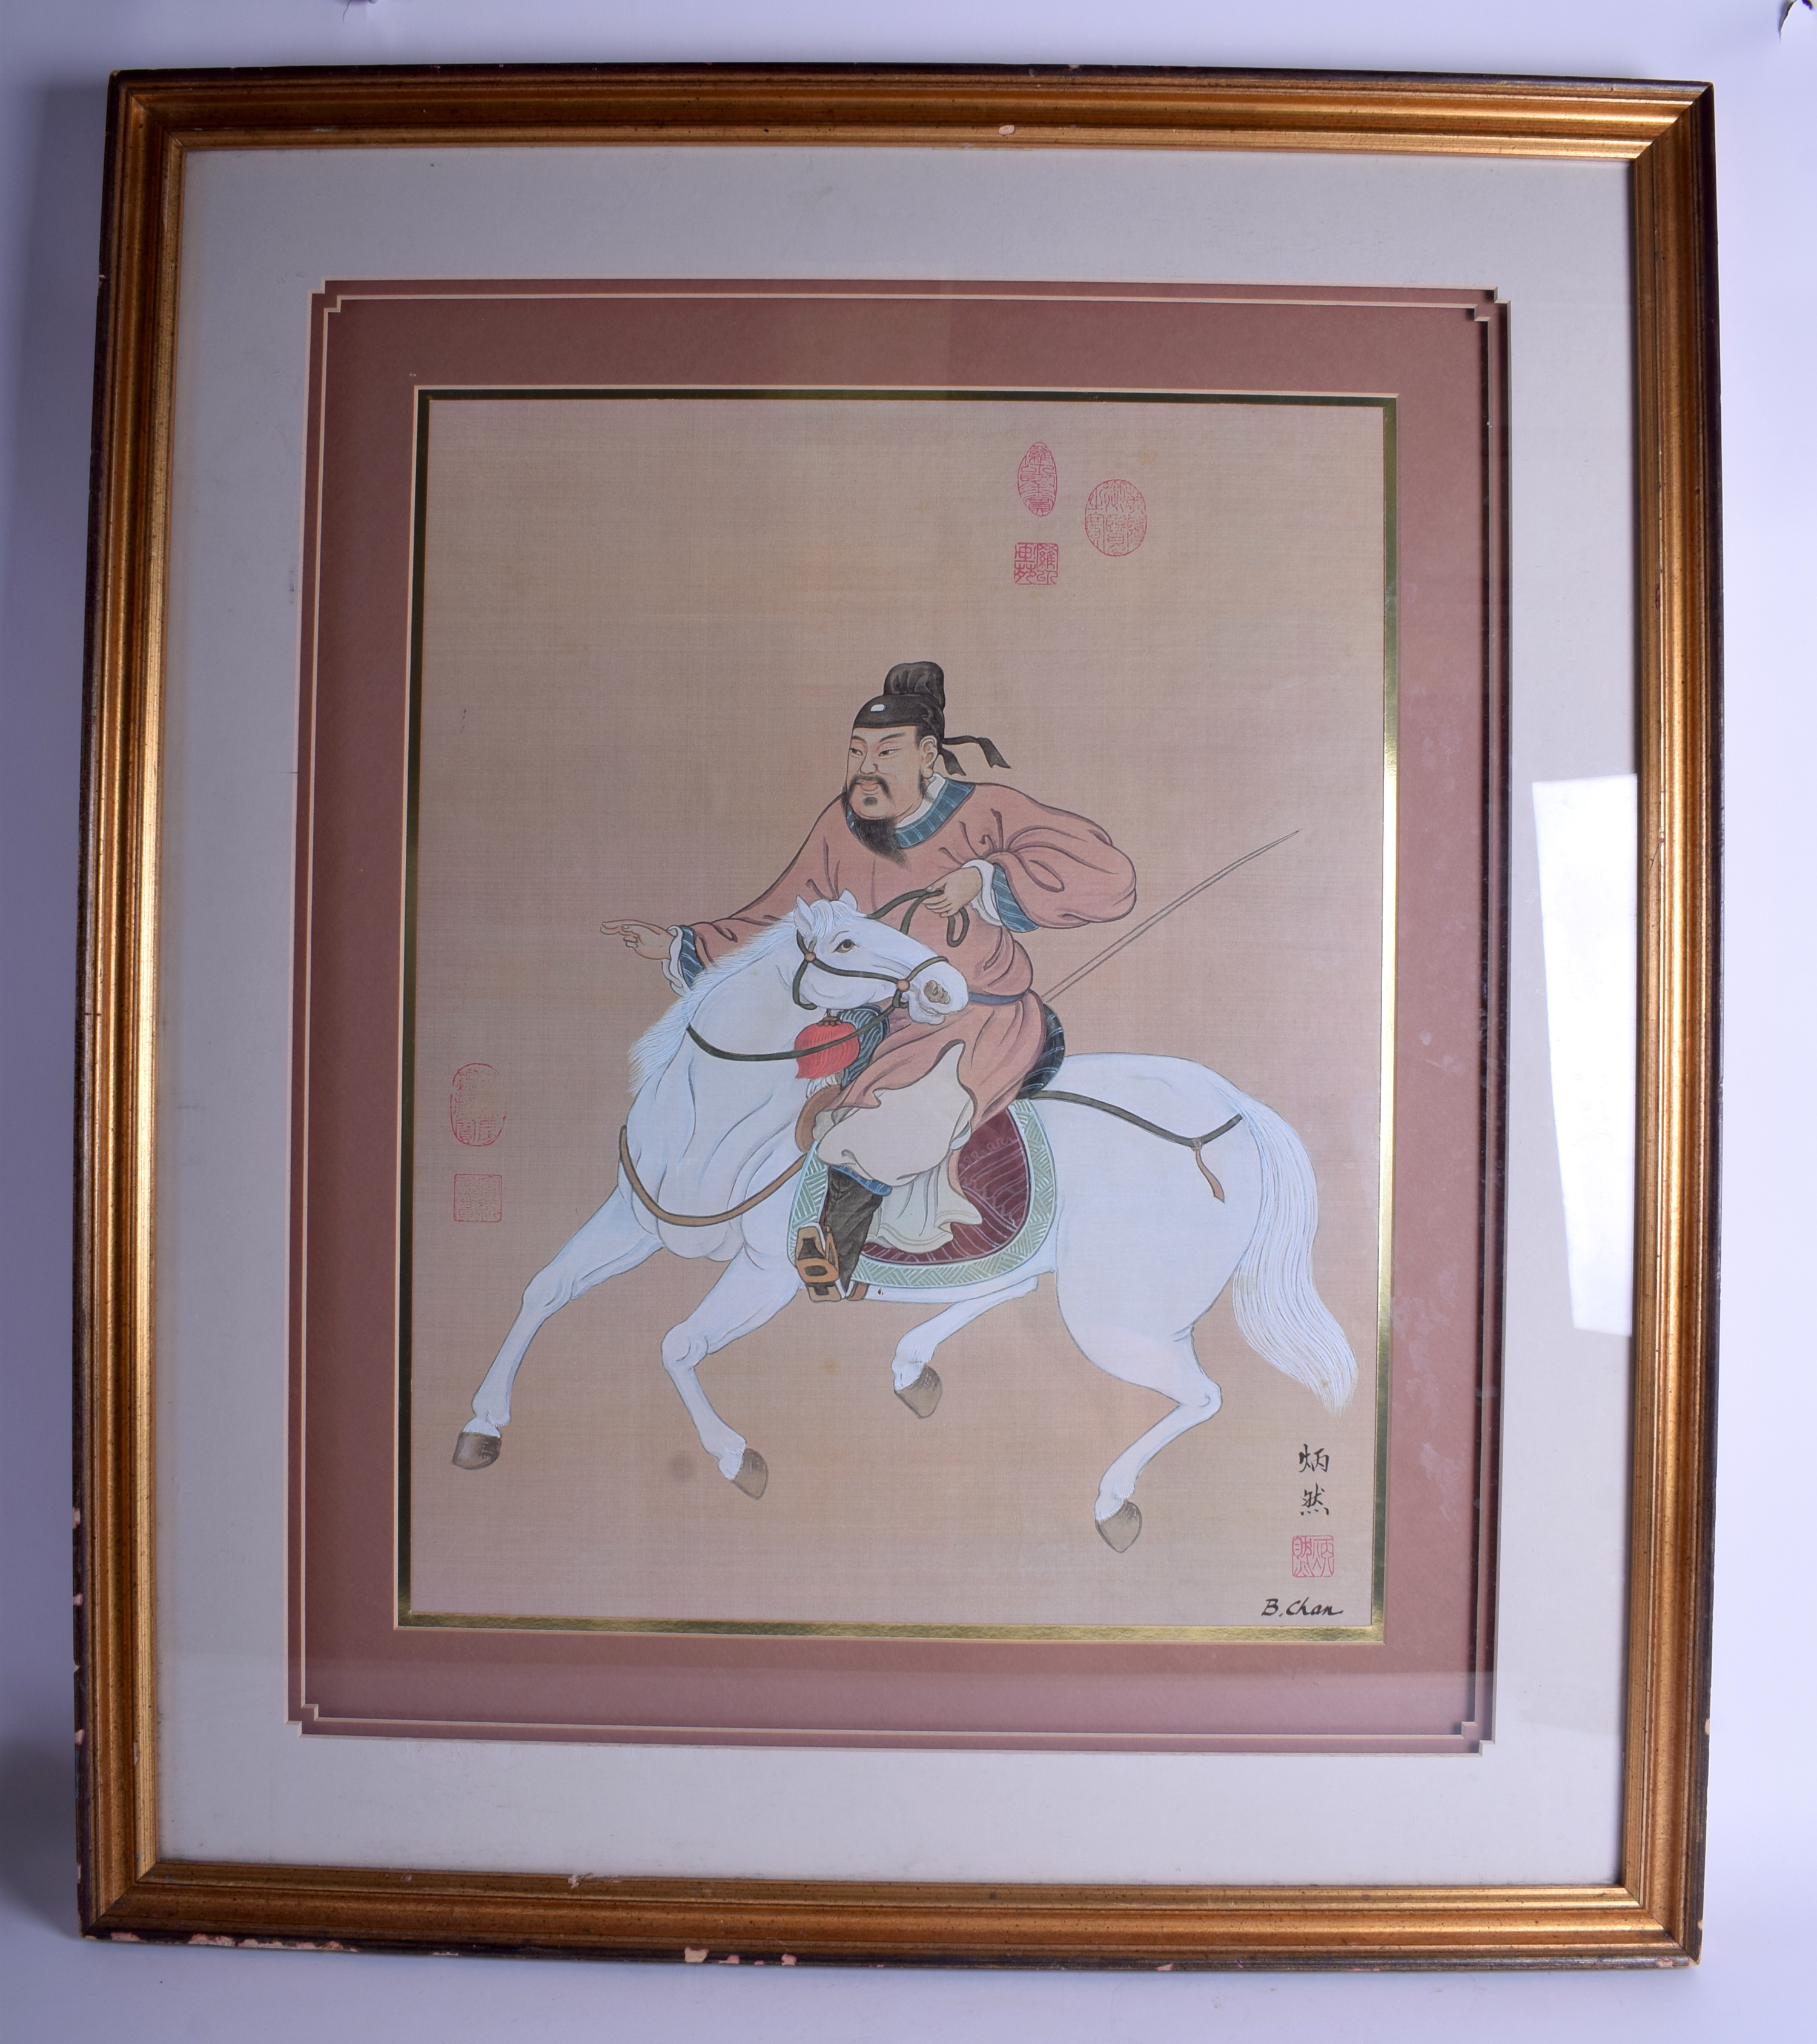 Lot 1644 - A LARGE EARLY 20TH CENTURY CHINESE FRAMED SILK WATERCOLOUR by Chen, painted with a warrior upon a h